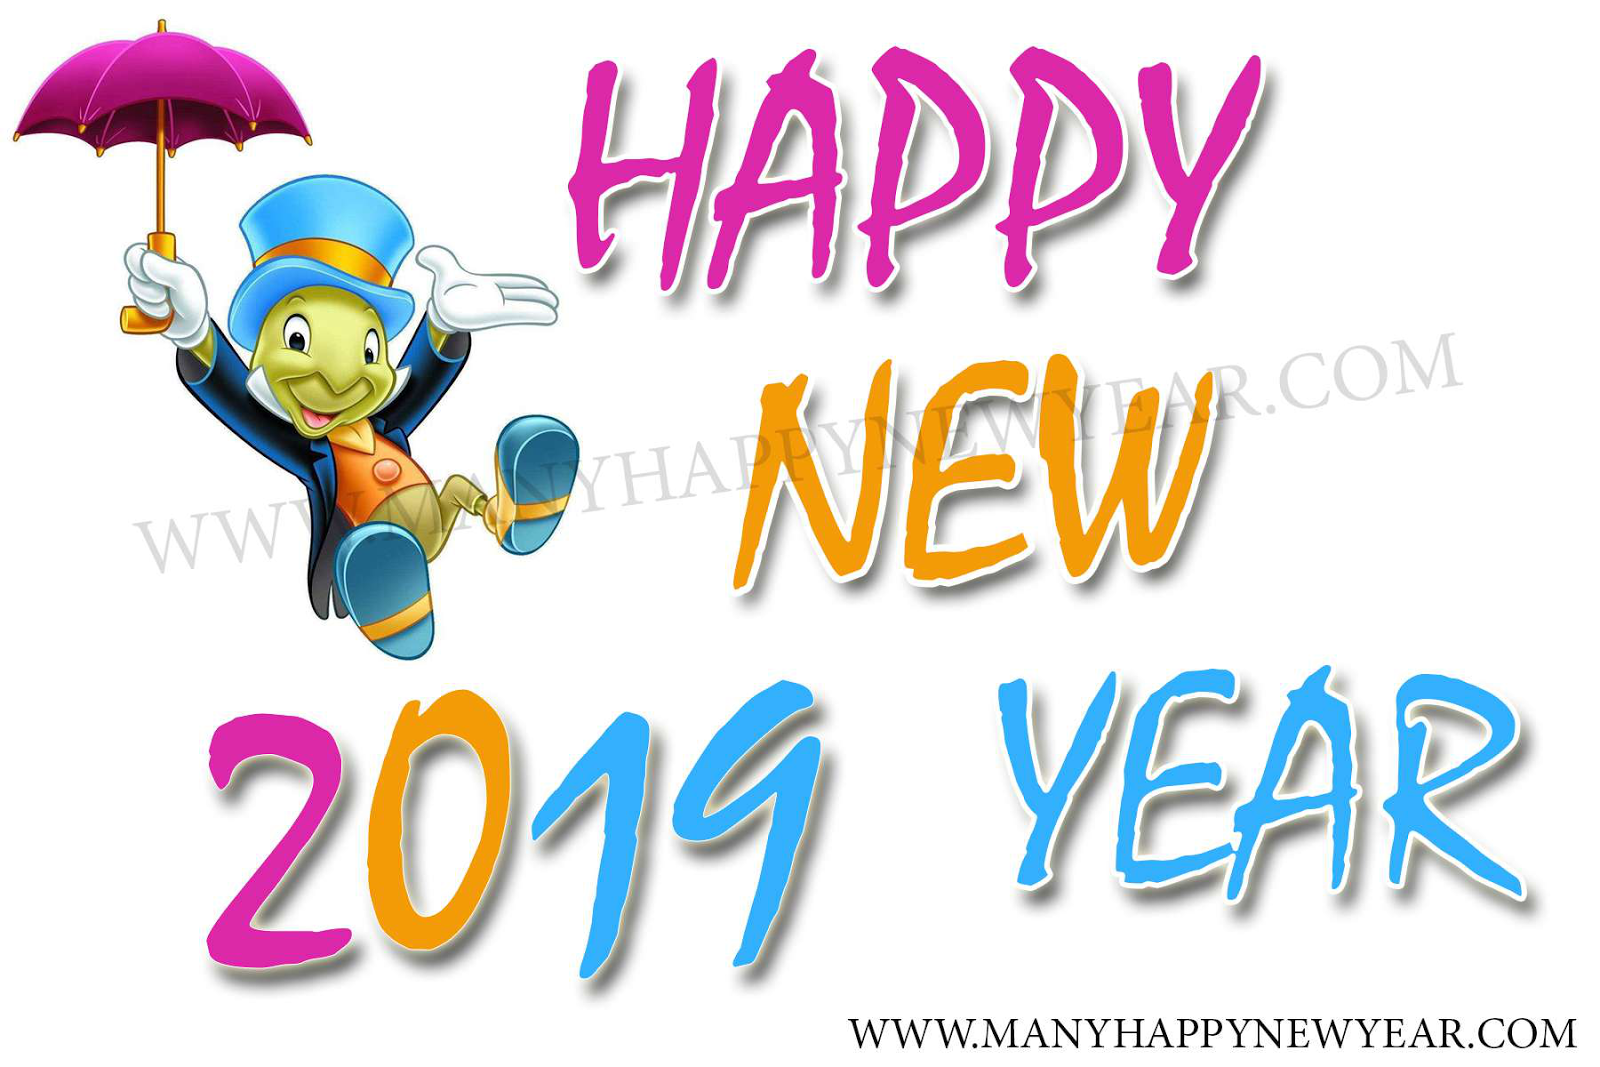 Happy New Year Messages 2019 New Year Messages For Friends And